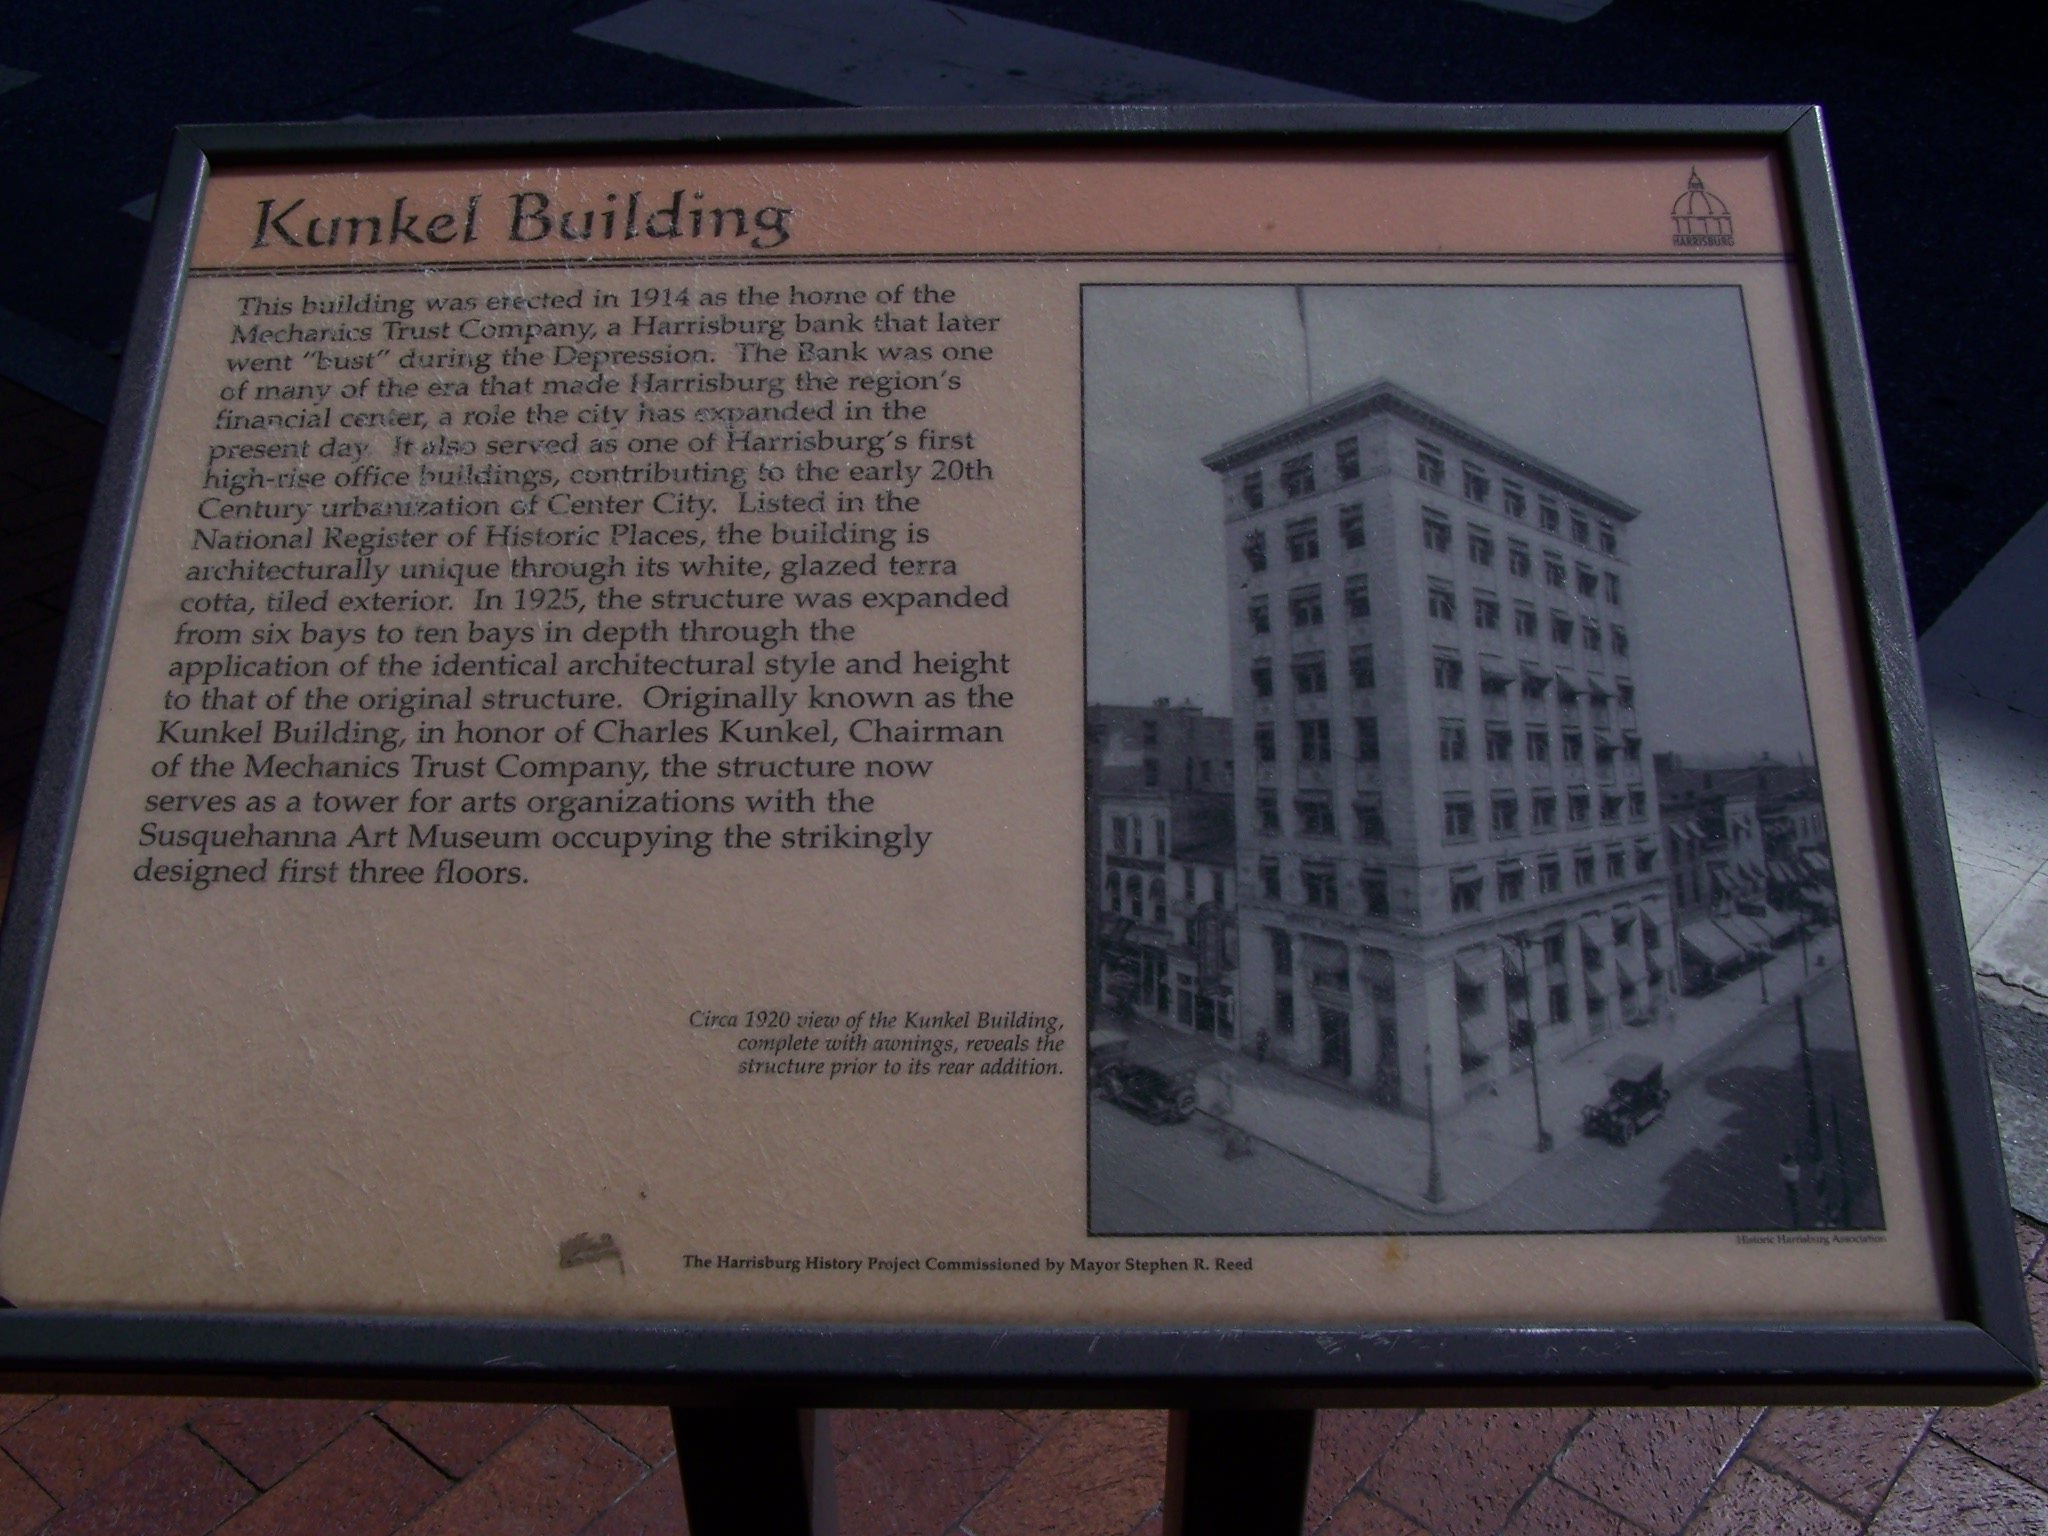 The local historical marker for the Kunkel Building.